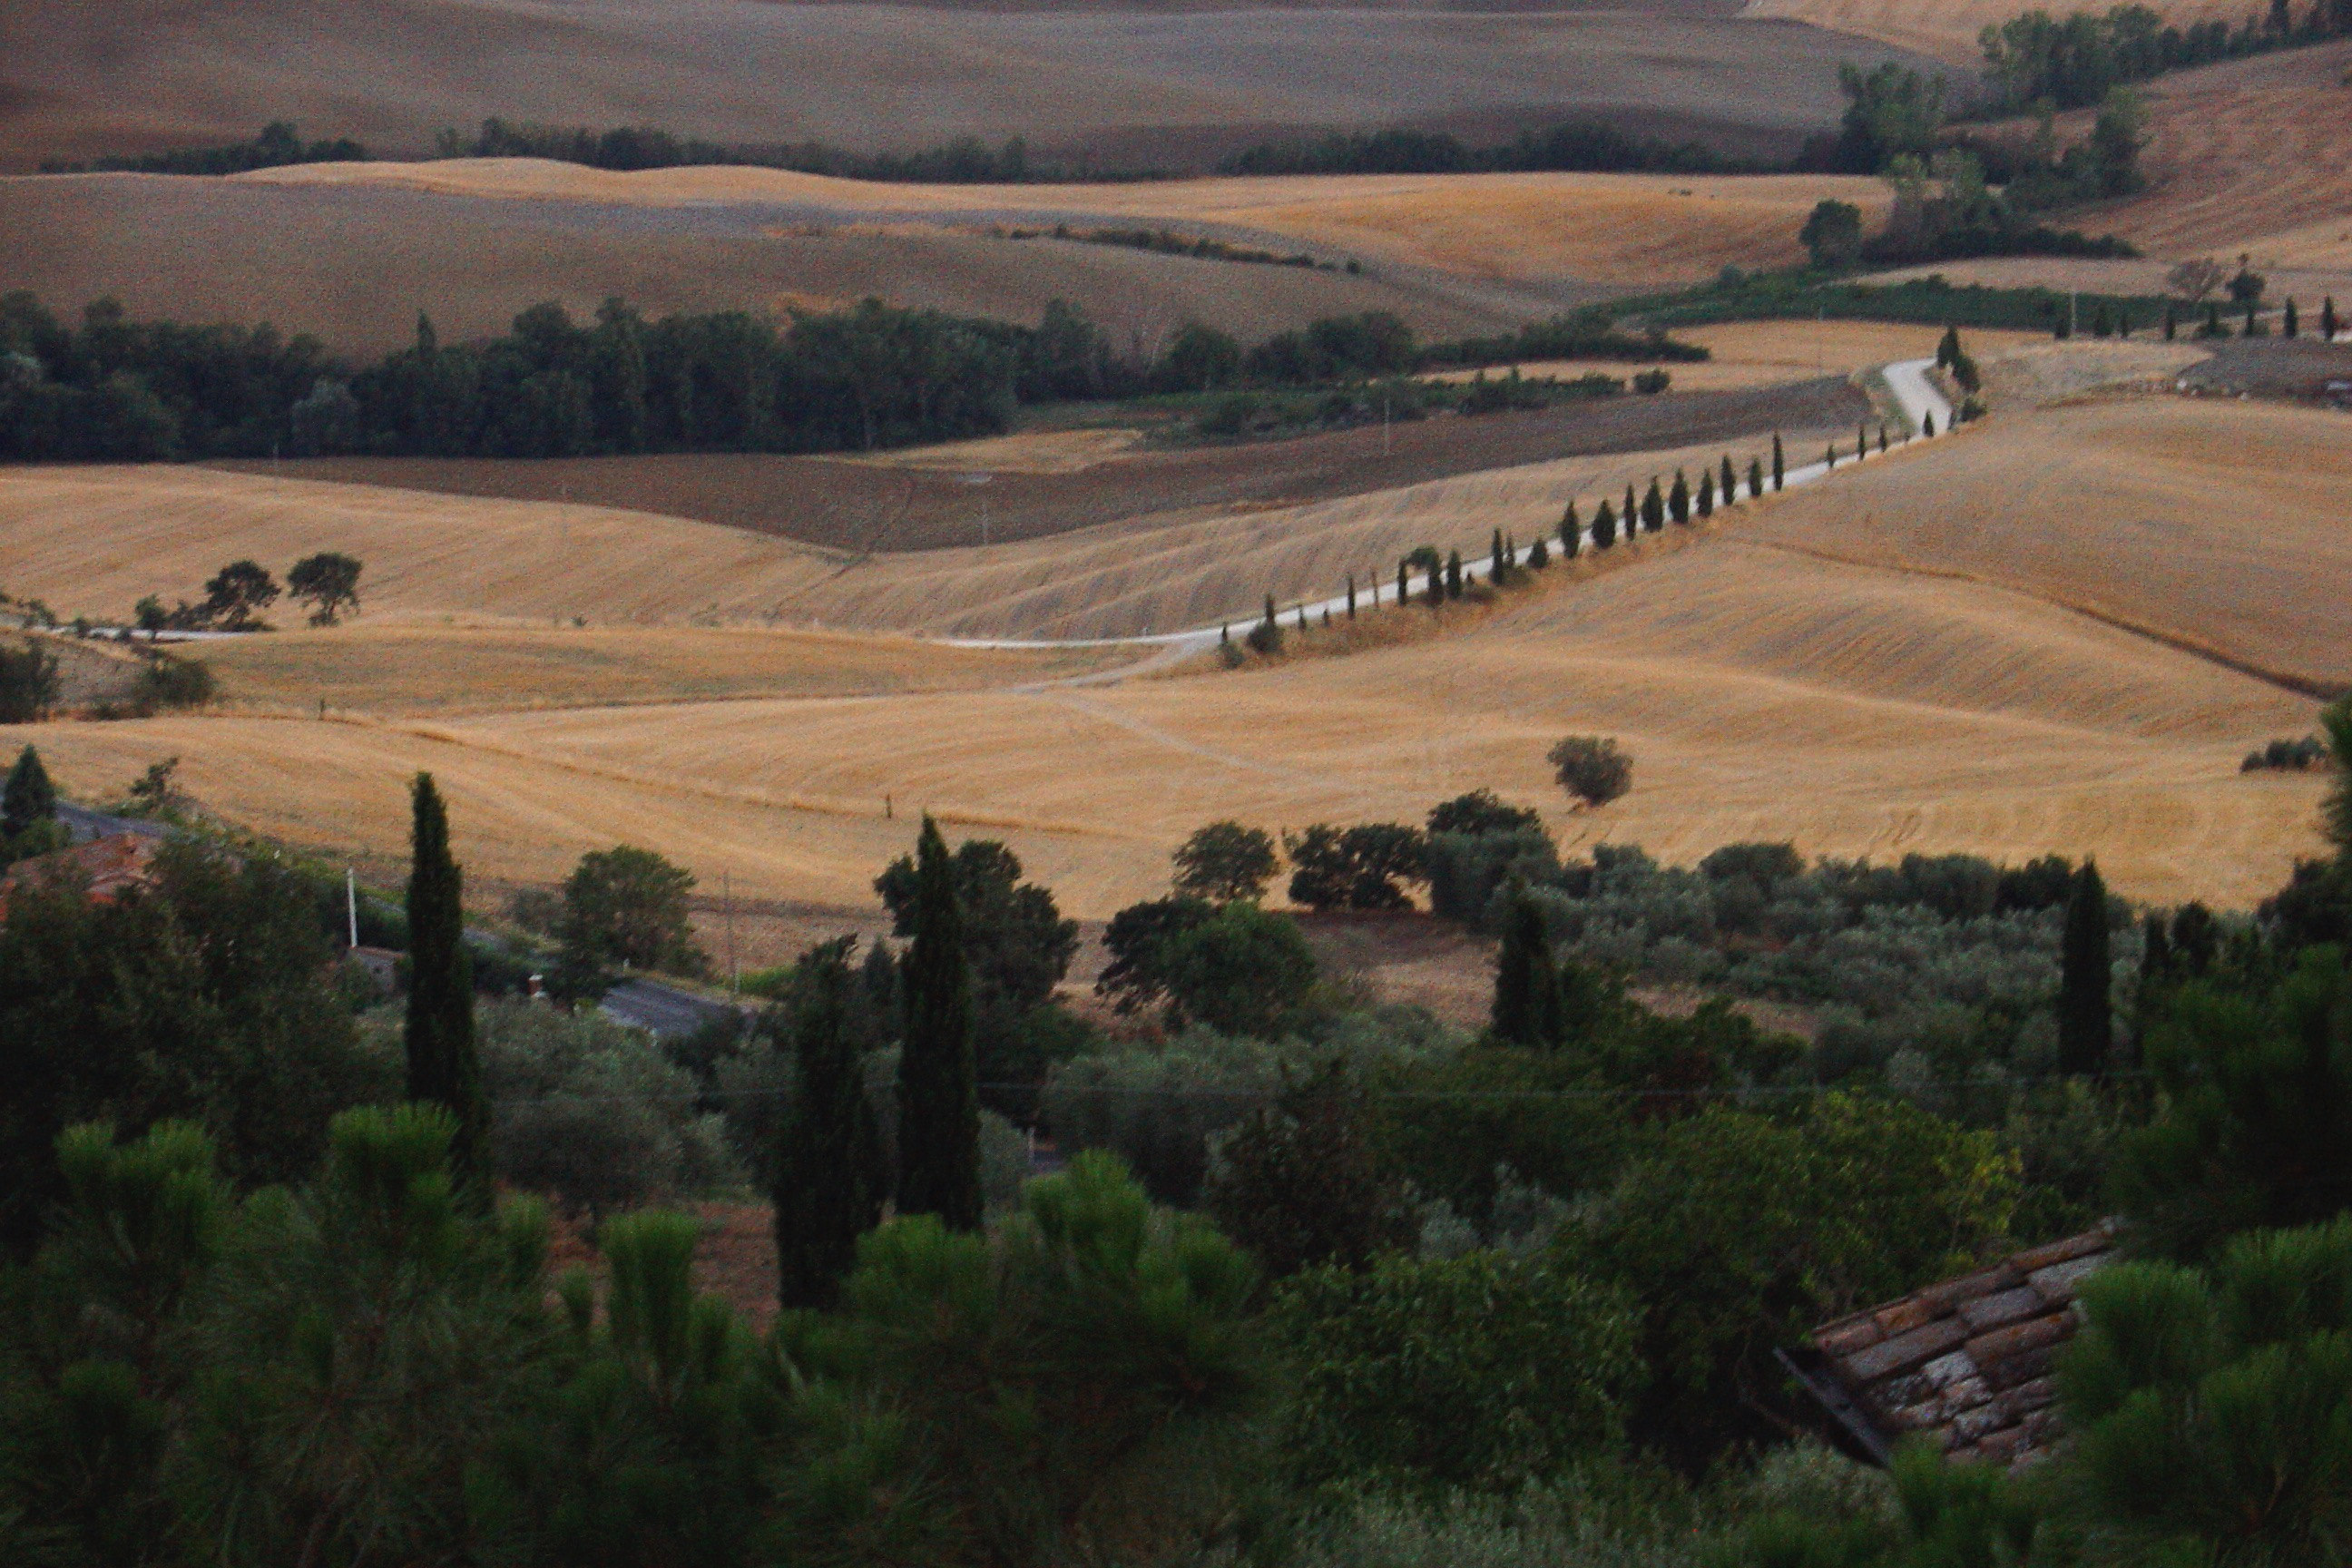 Cultural Landscapes: Val d'Orcia, Casentino Valley, Villas and Gardens